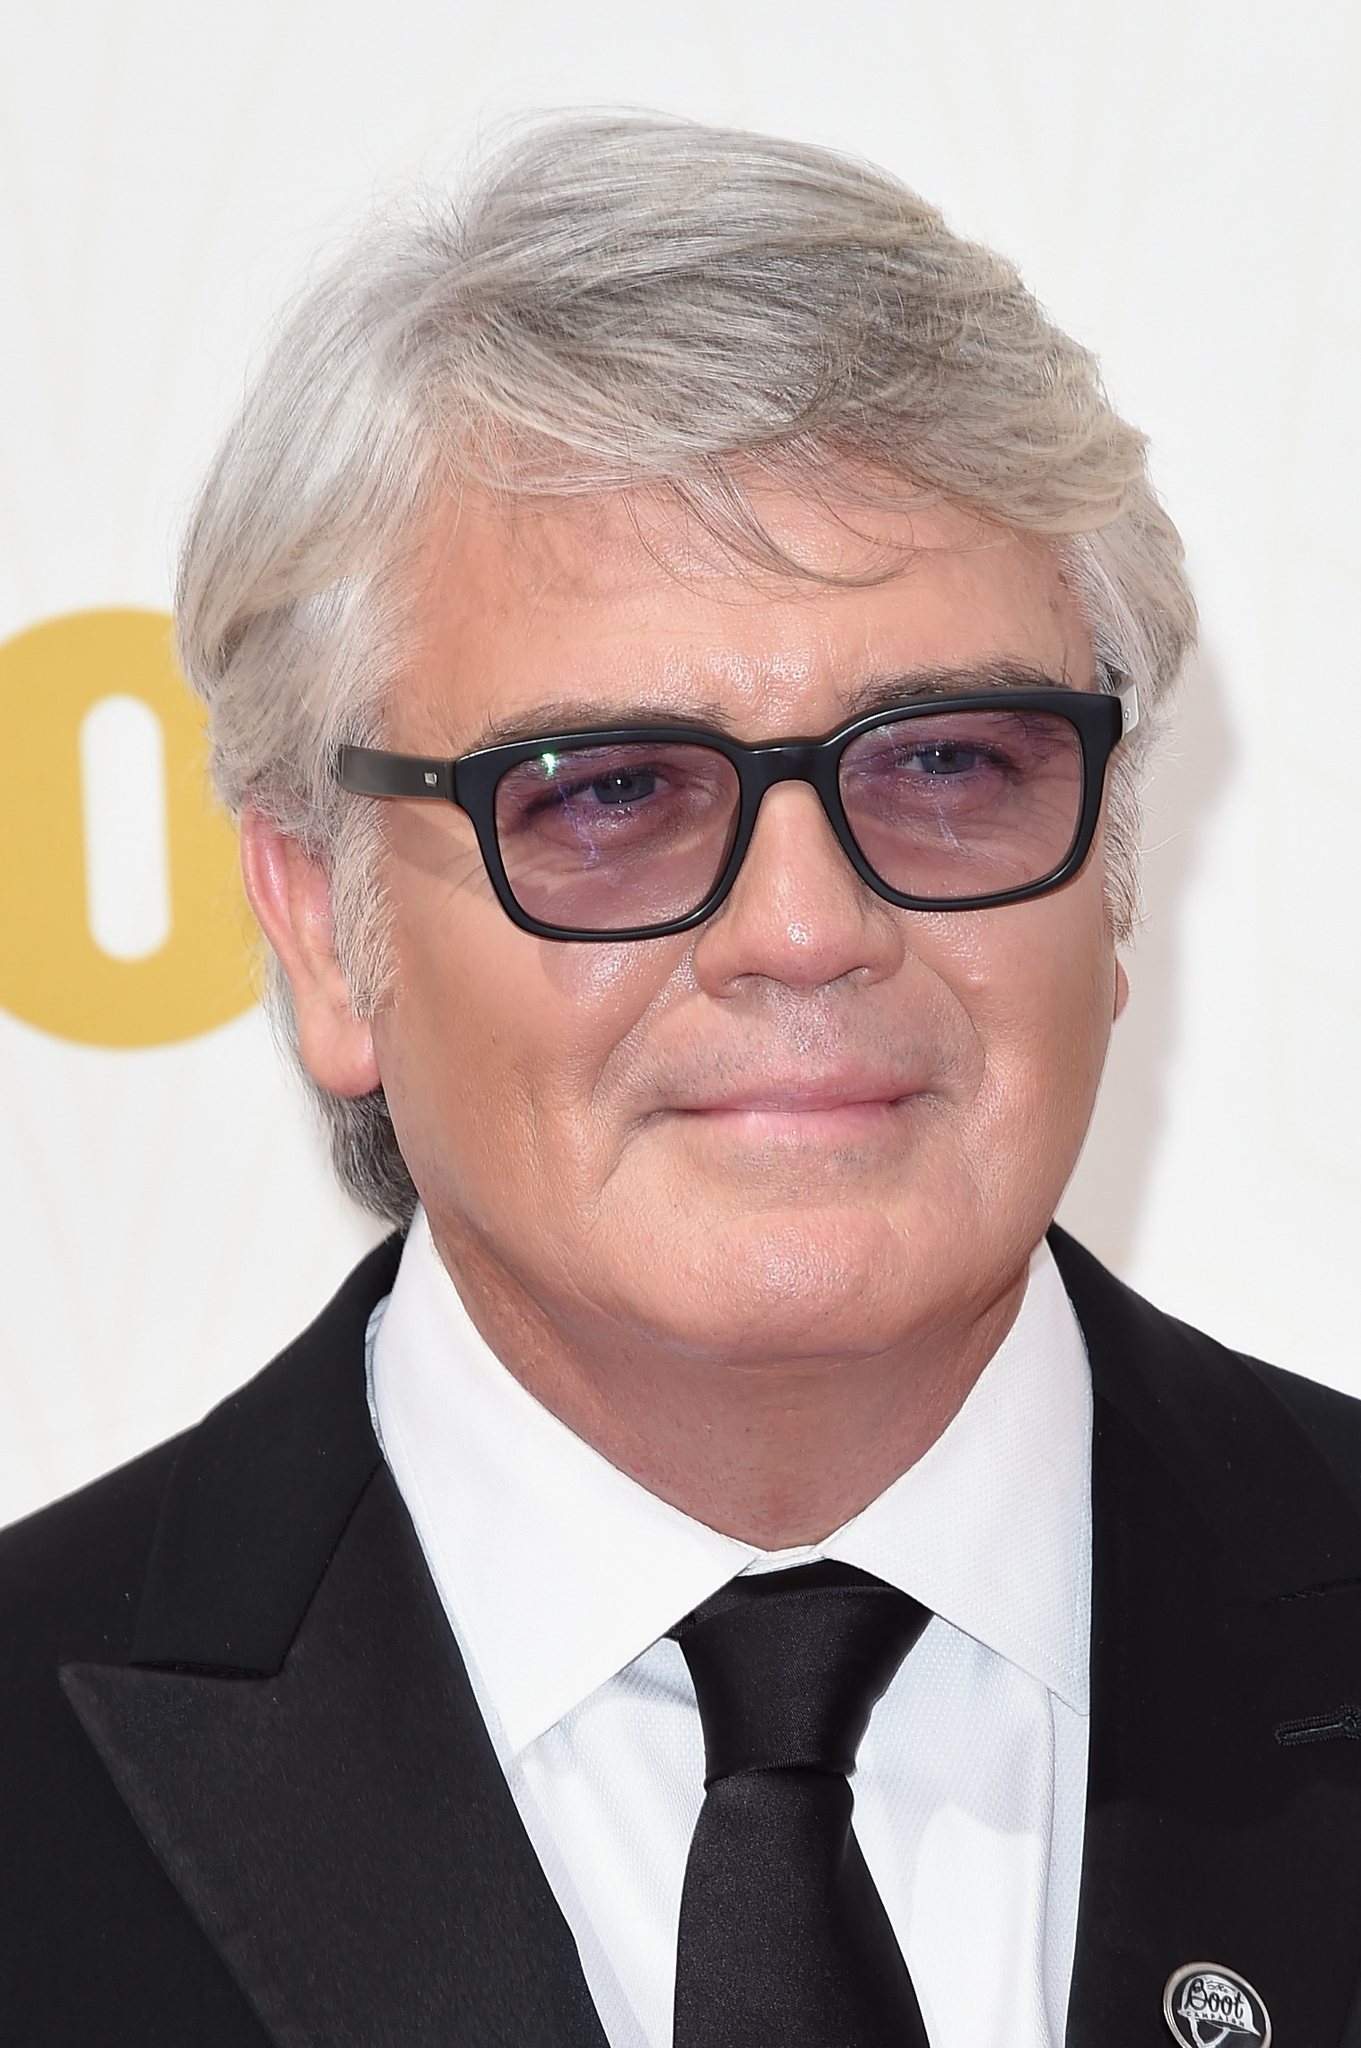 Michael Harney at event of The 67th Primetime Emmy Awards (2015)